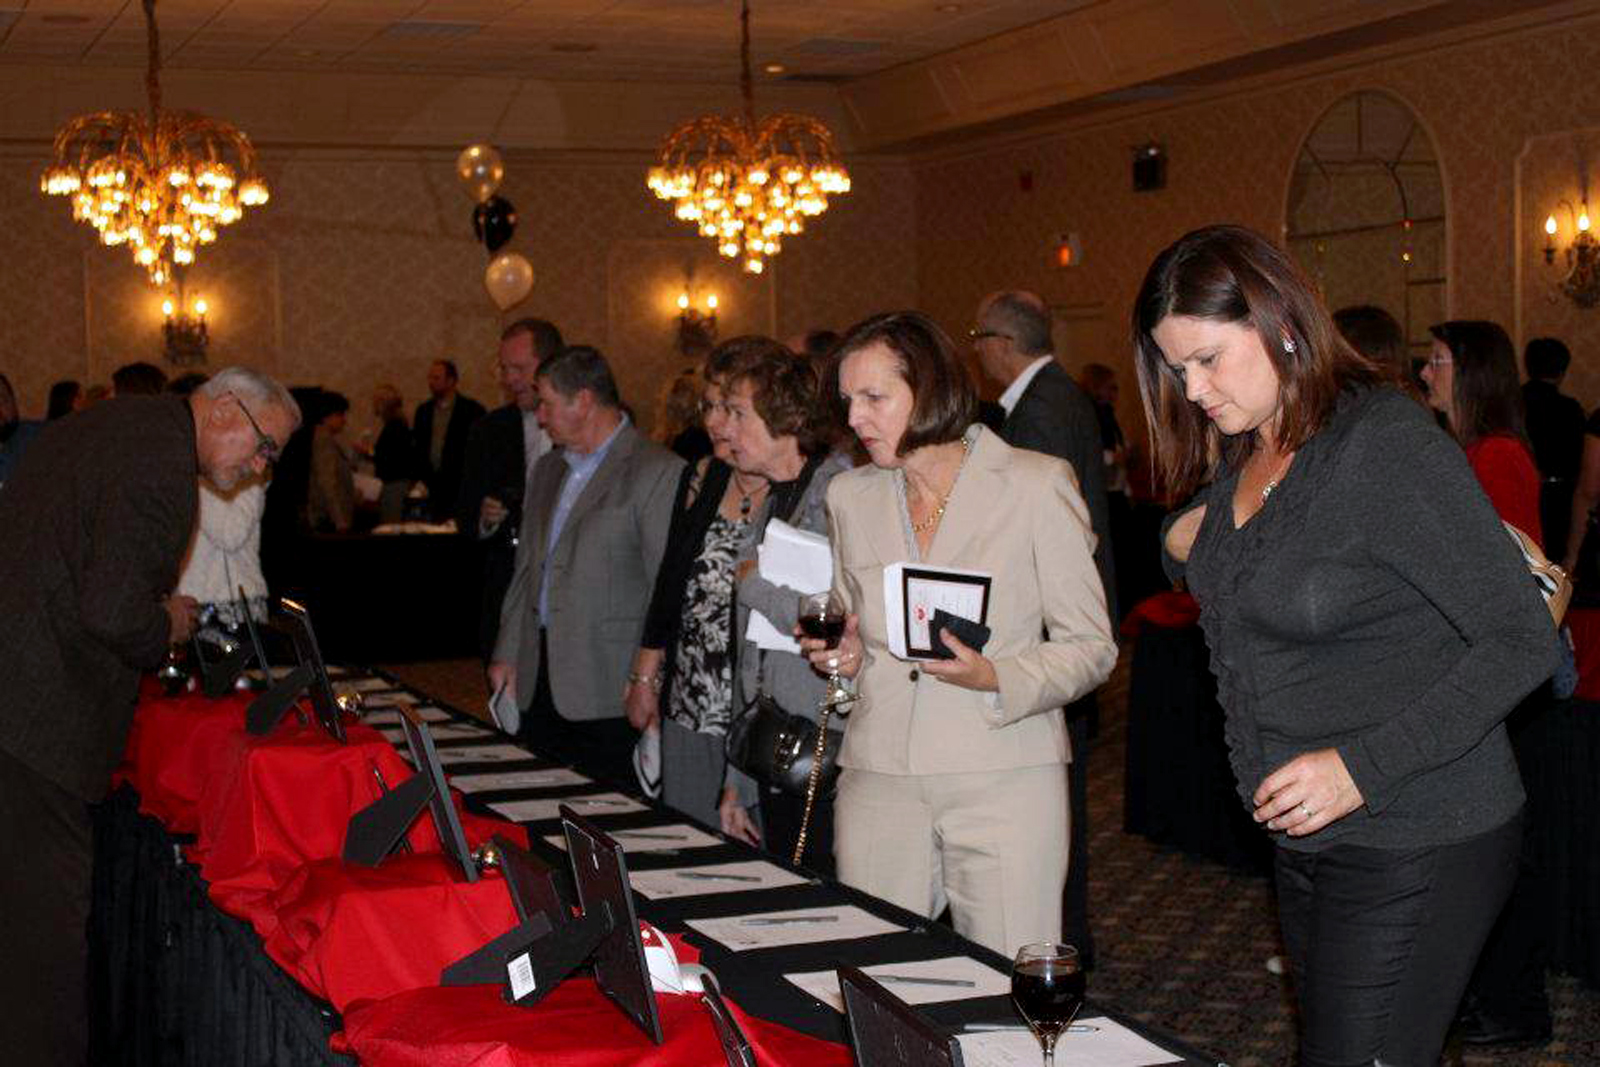 Guests of last year's Tinsel & Tails Holiday Petacular take a look at the various silent auction items. This year's event is 6 to 10 p.m. Nov. 21 at Ritz Charles in Carmel. (Submitted photo.)